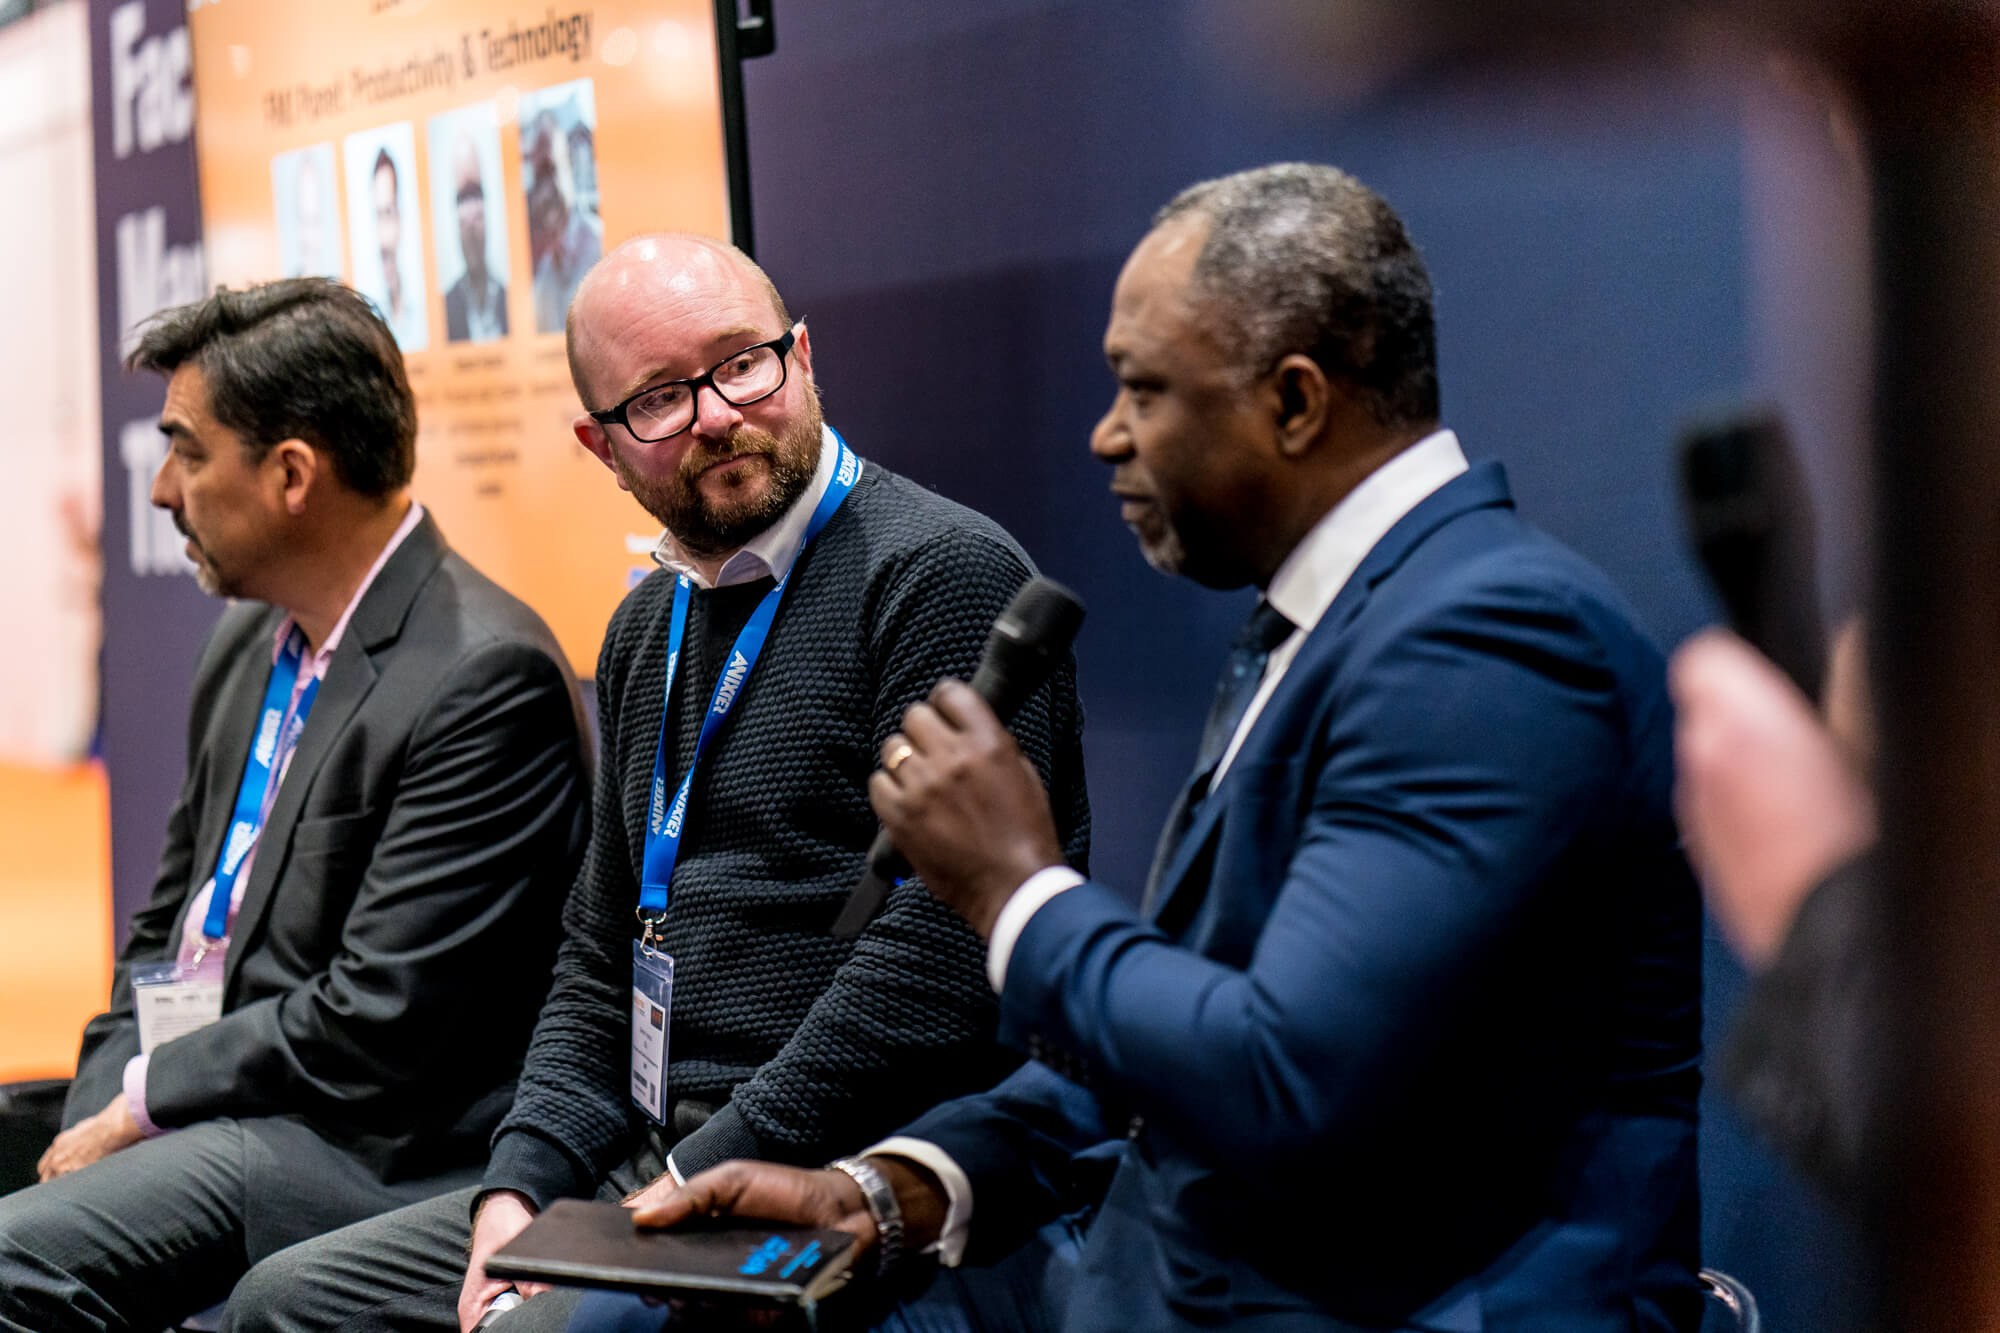 Two speakers at a seminar at Facilities Show 2019